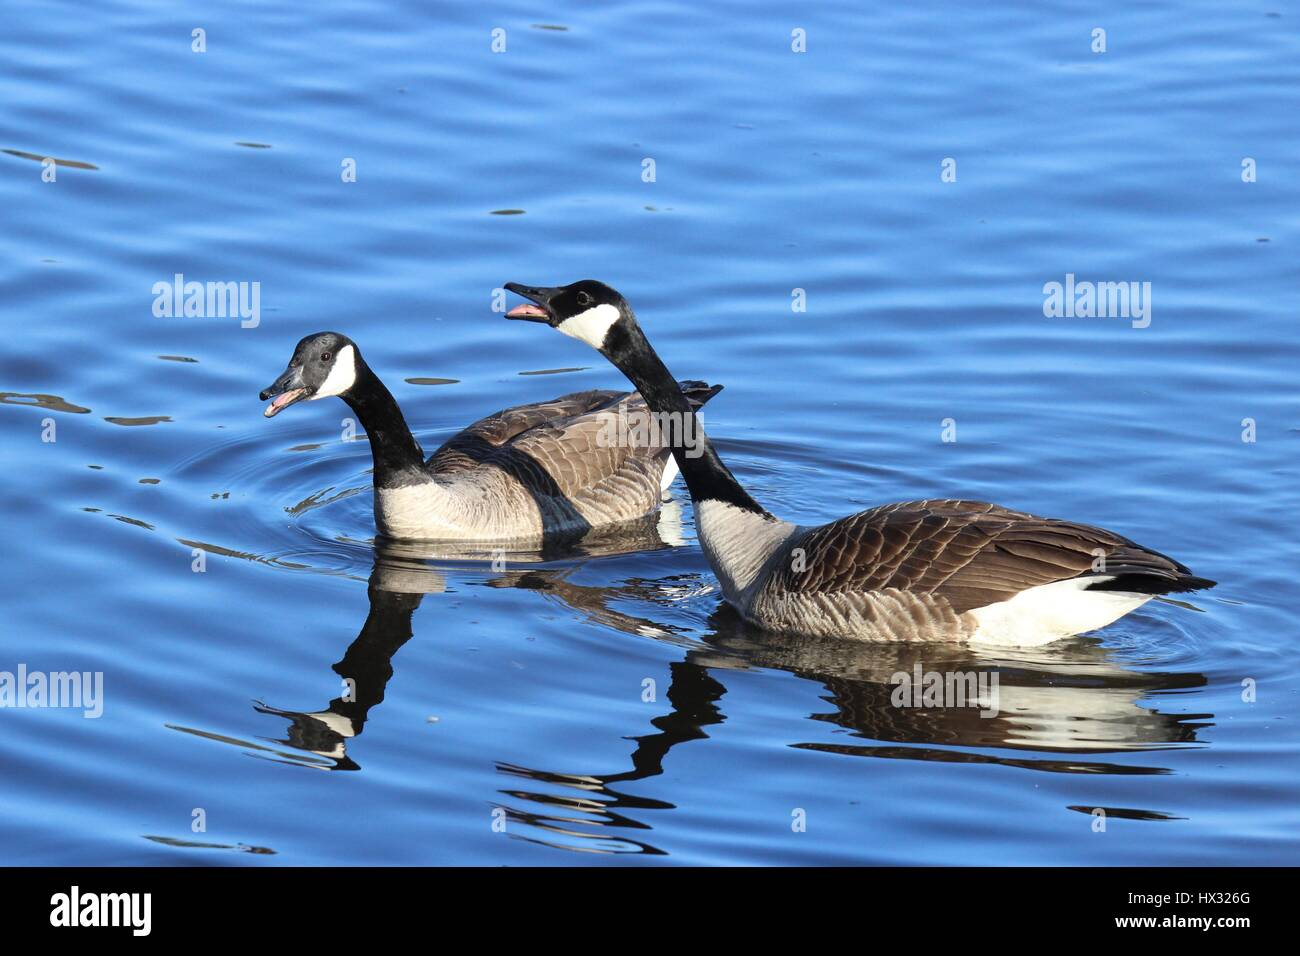 Two Canada geese honking at the other birds on the lake. - Stock Image